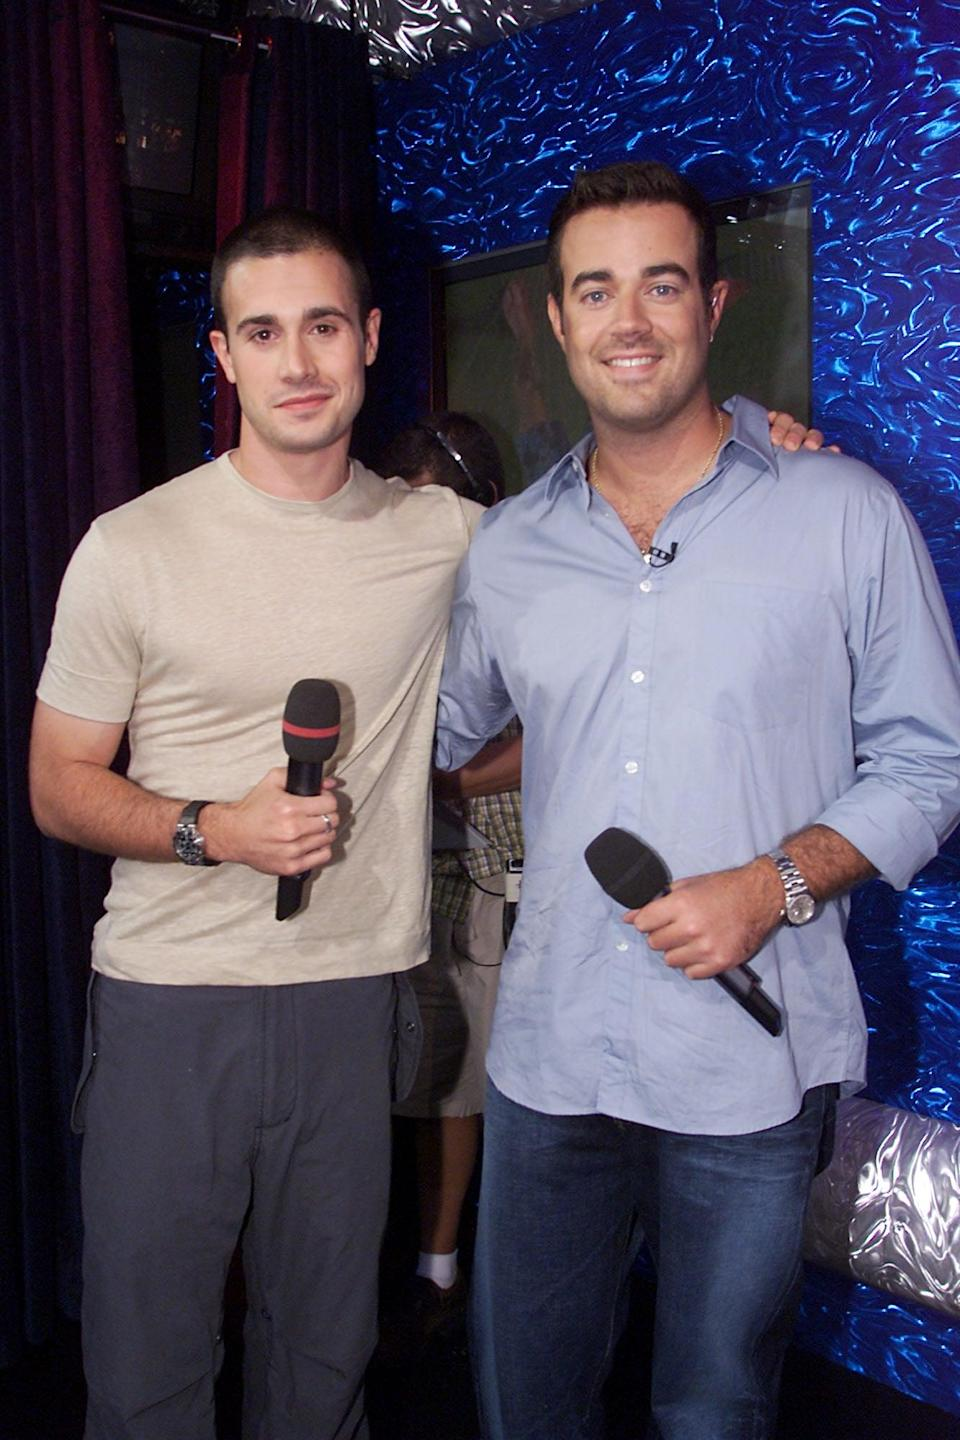 <p>Freddie Prinze Jr. posed with Carson Daly during a show in 2001.</p>